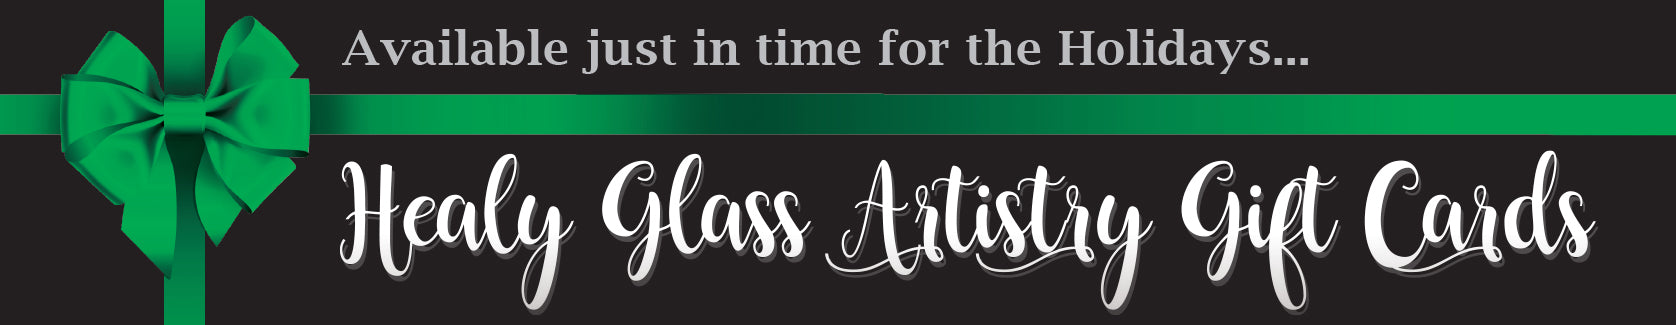 Healy Glass Artistry Gift Cards